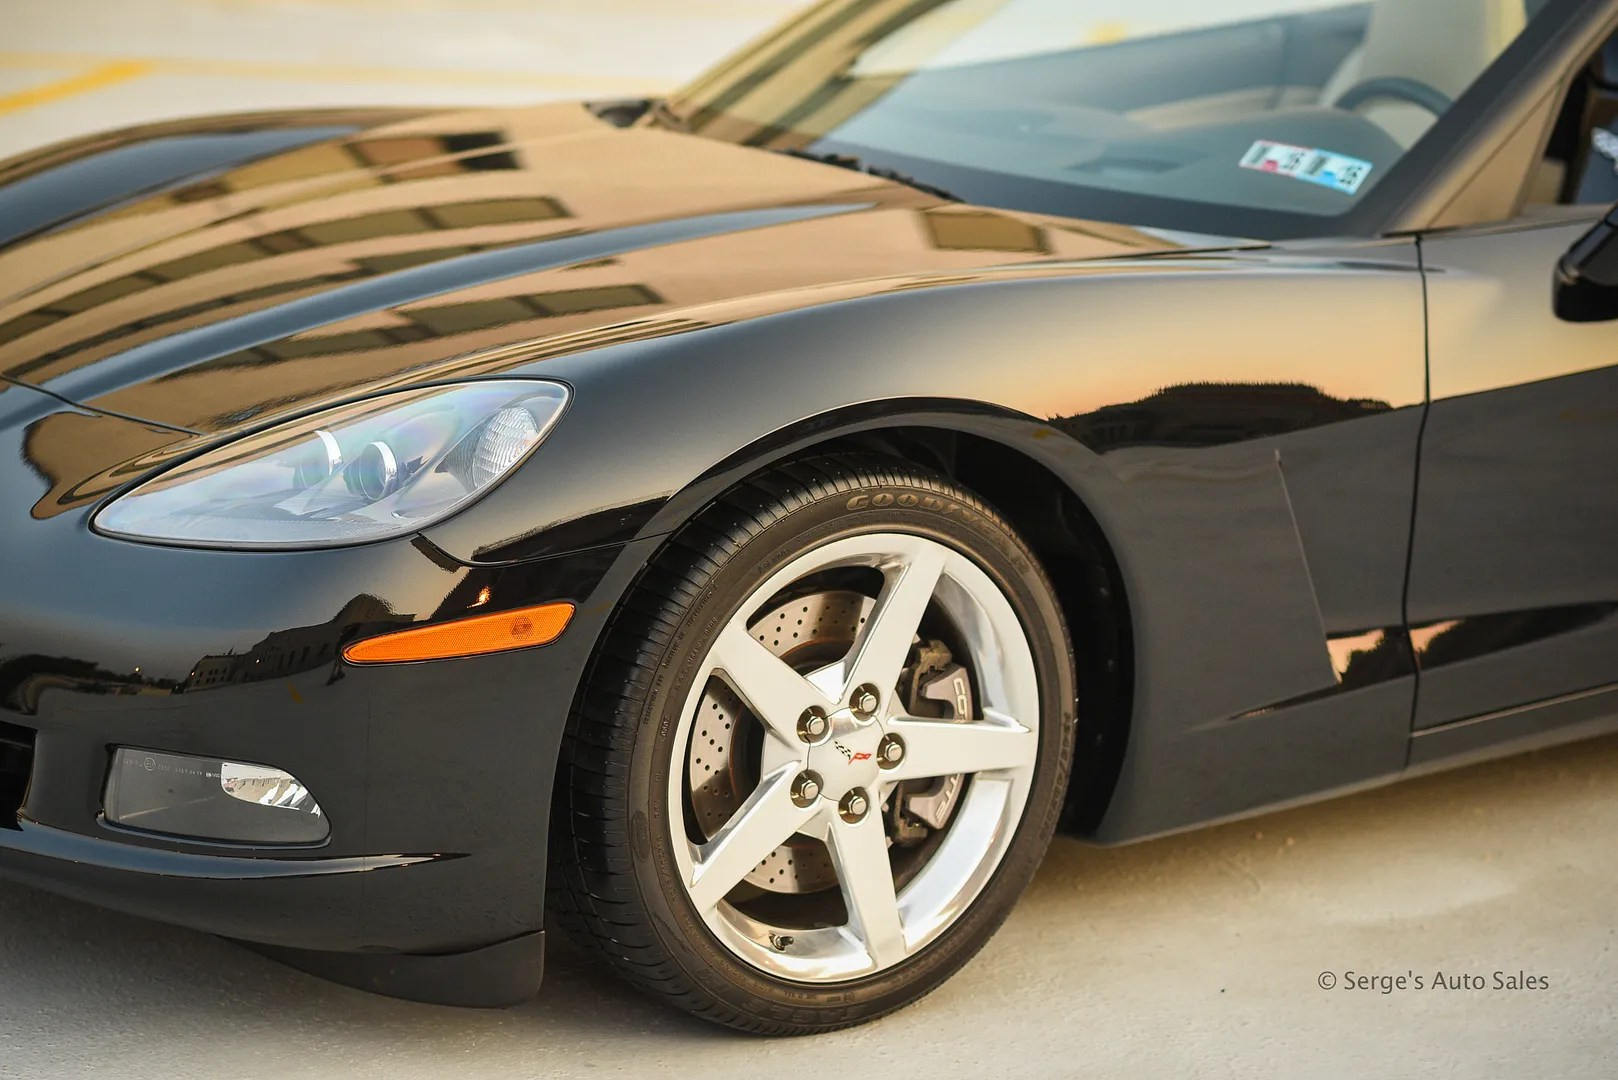 photo 2005-C6-Corvette-Convertible-For-Sale-Scranton-Serges-Auto-Sales-dealer--34_zps5iflcleq.jpg